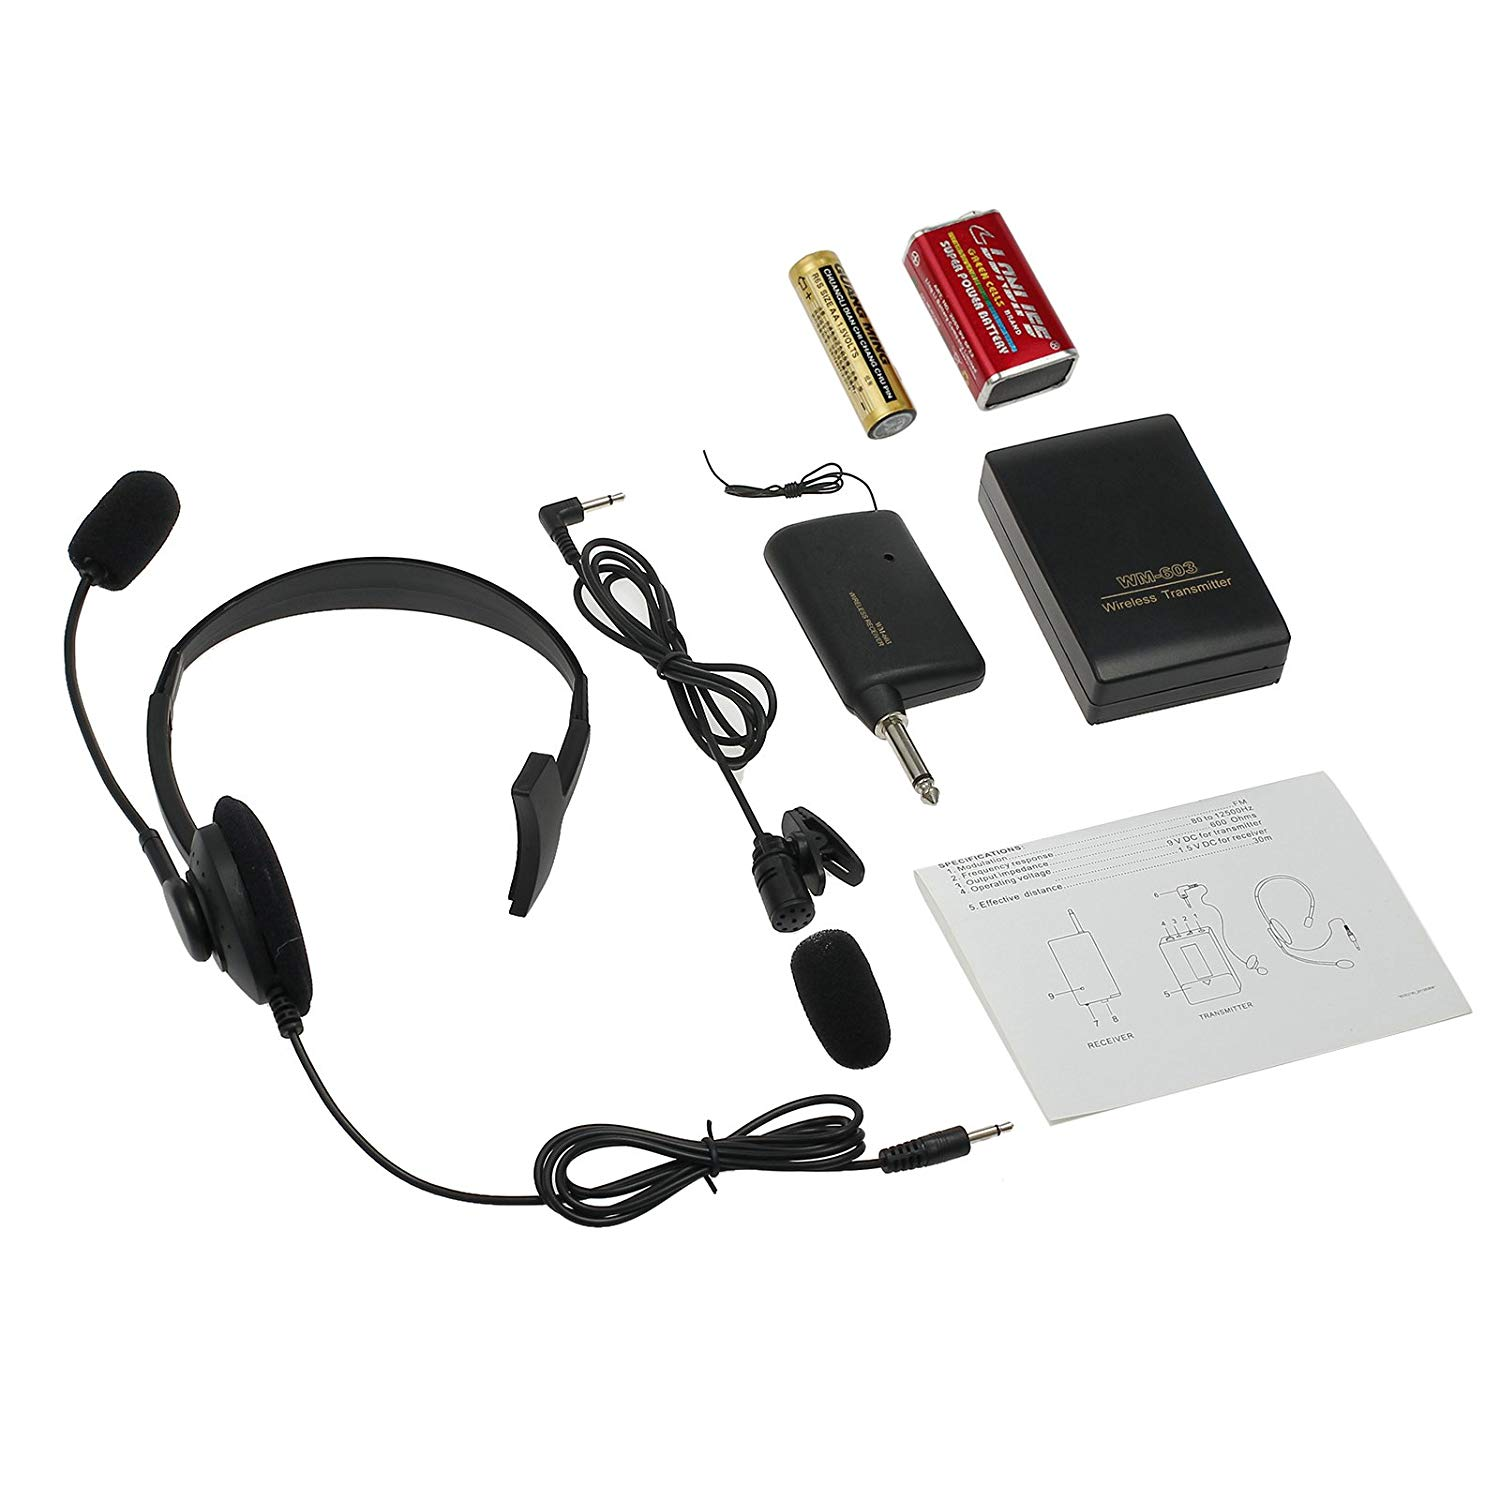 AUTOUTLET Professional Hands Free Wireless Microphone System Receiver & FM Transmitter & 3.5MM Headworn Microphone (Headset) & 6.5MM Clip-on Lapel Microphone for Teaching, Meetings, Presentations